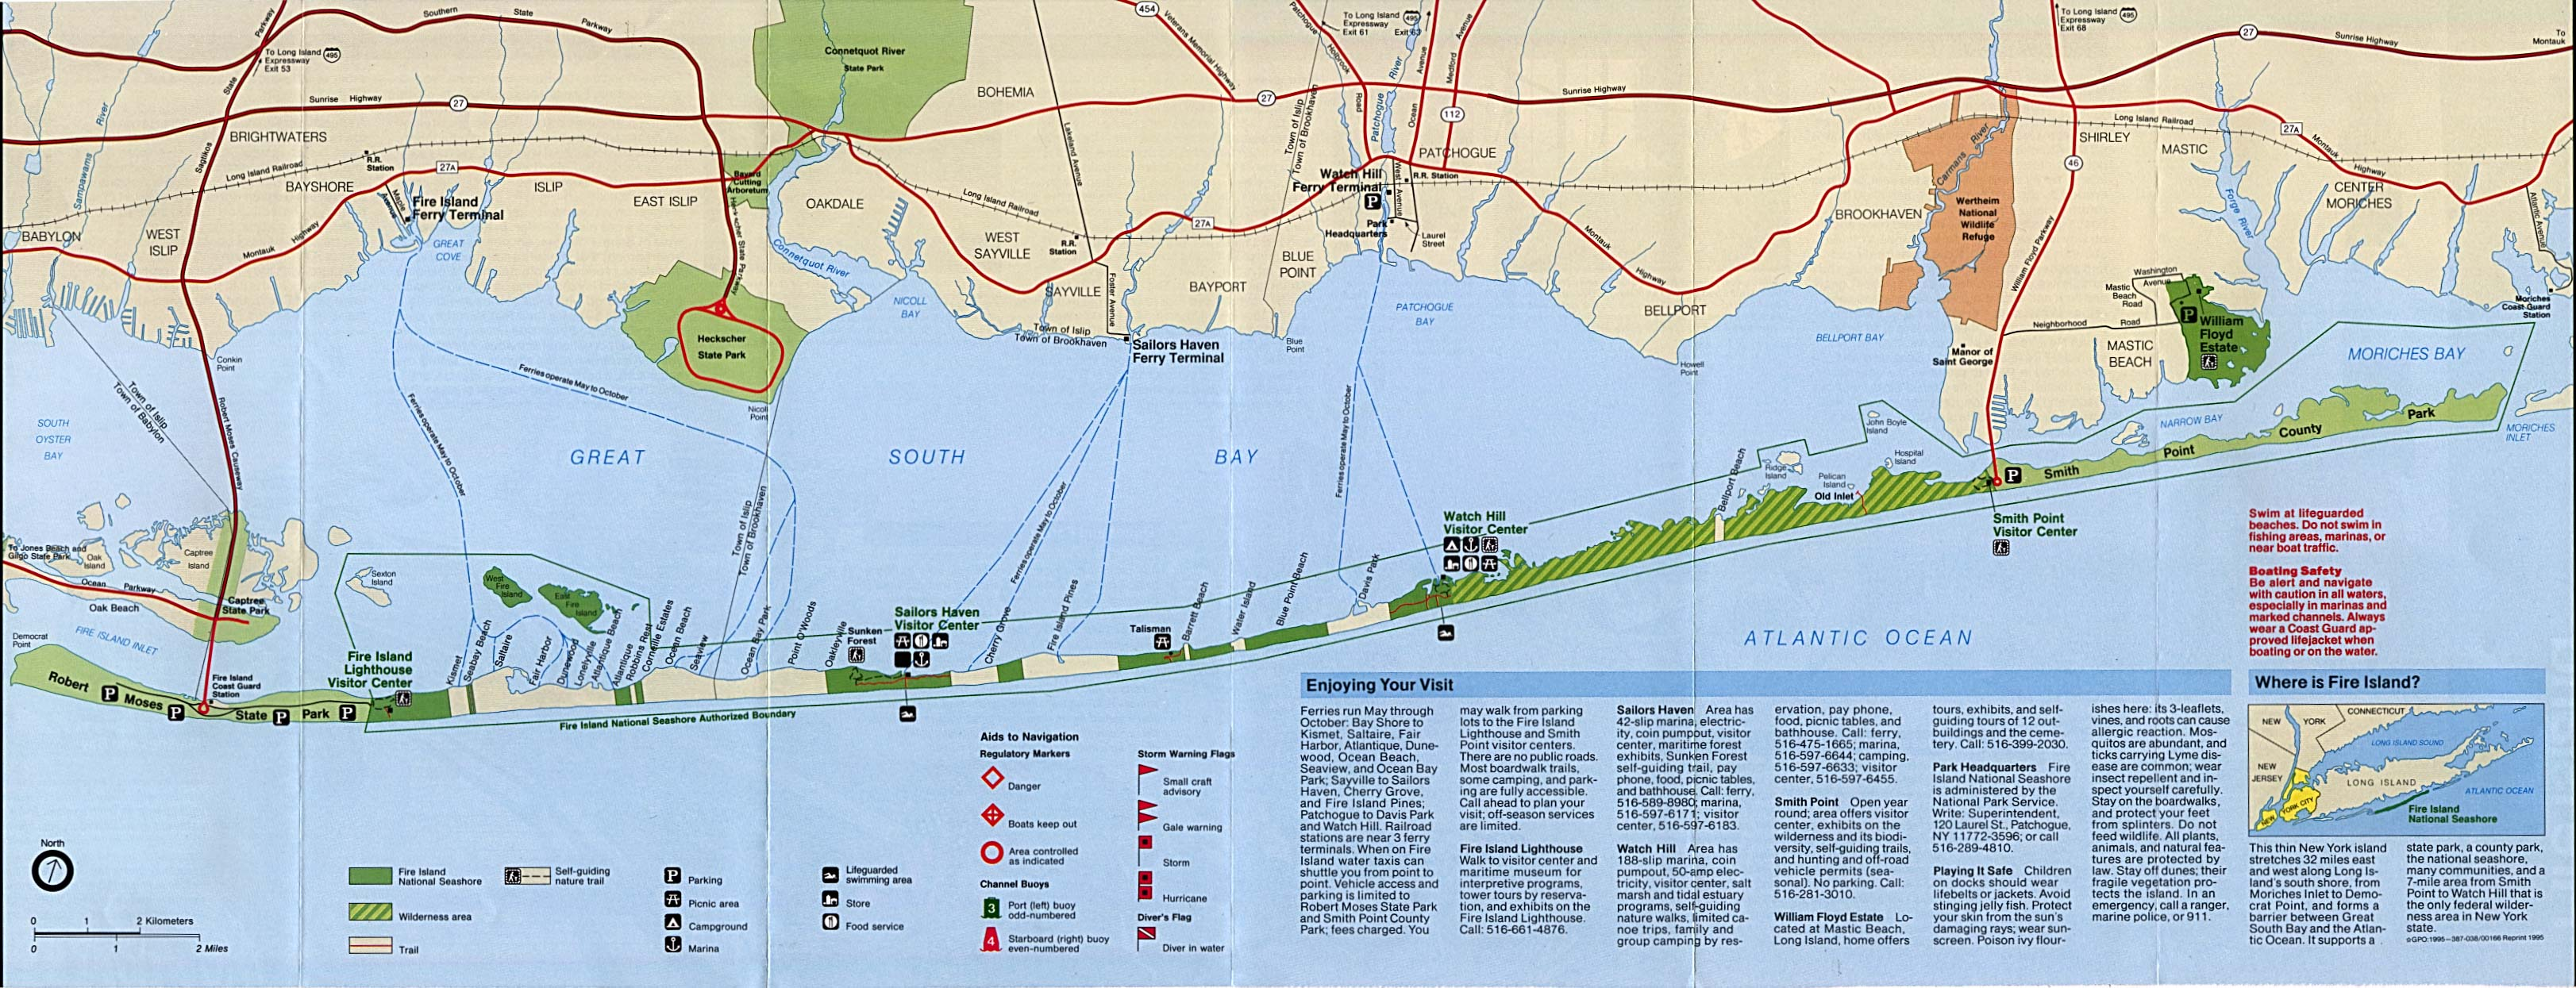 Park Map of Fire Island National Seashore, New York, United States